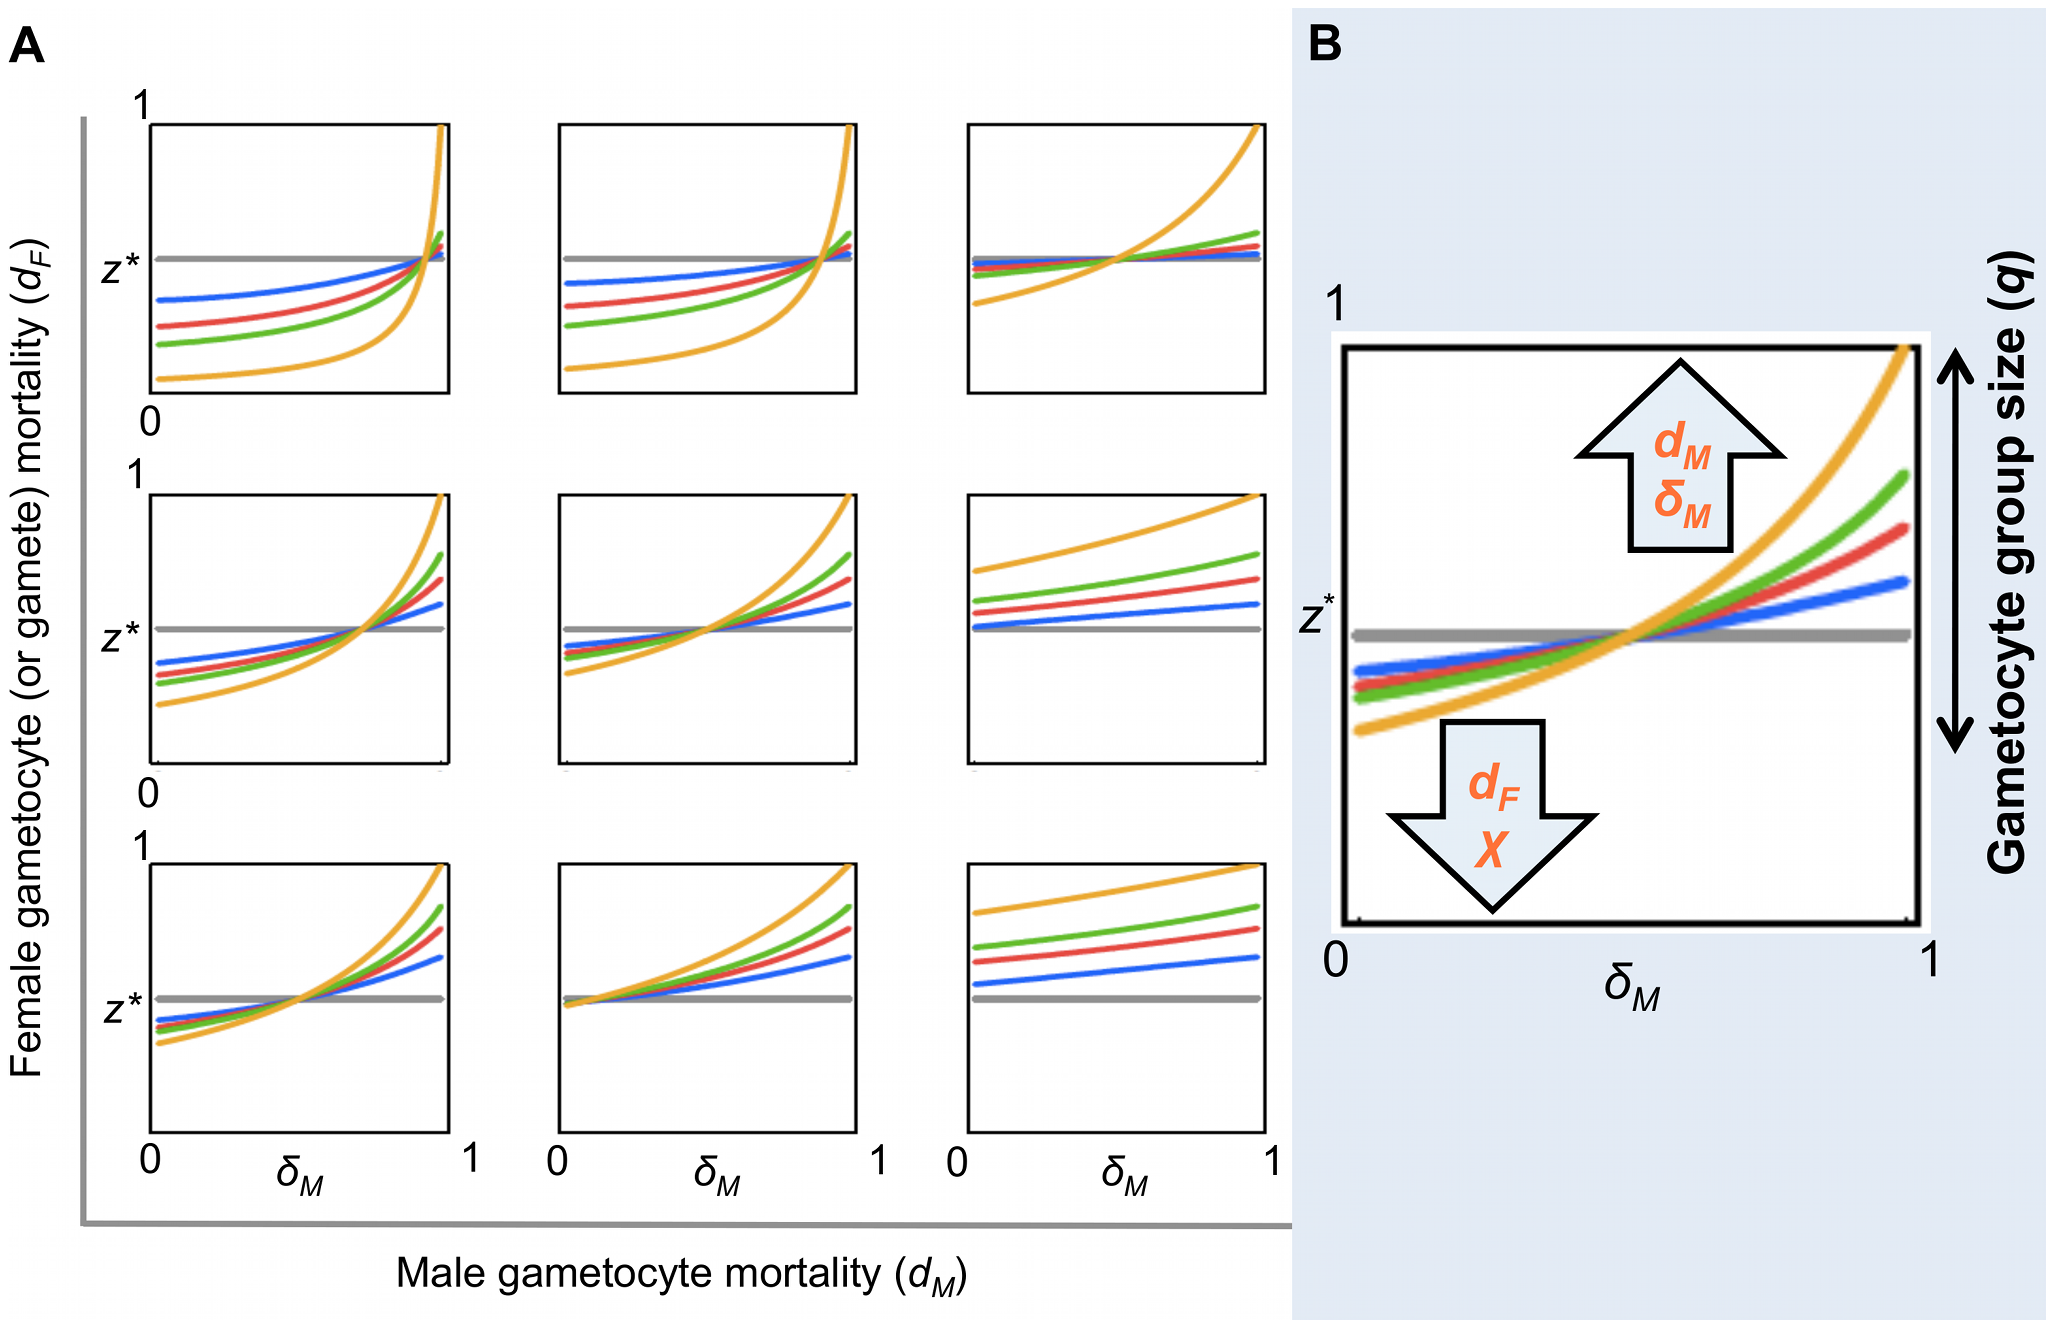 Evolutionarily stable sex allocation strategies when sex- and stage-specific mortality rates vary.